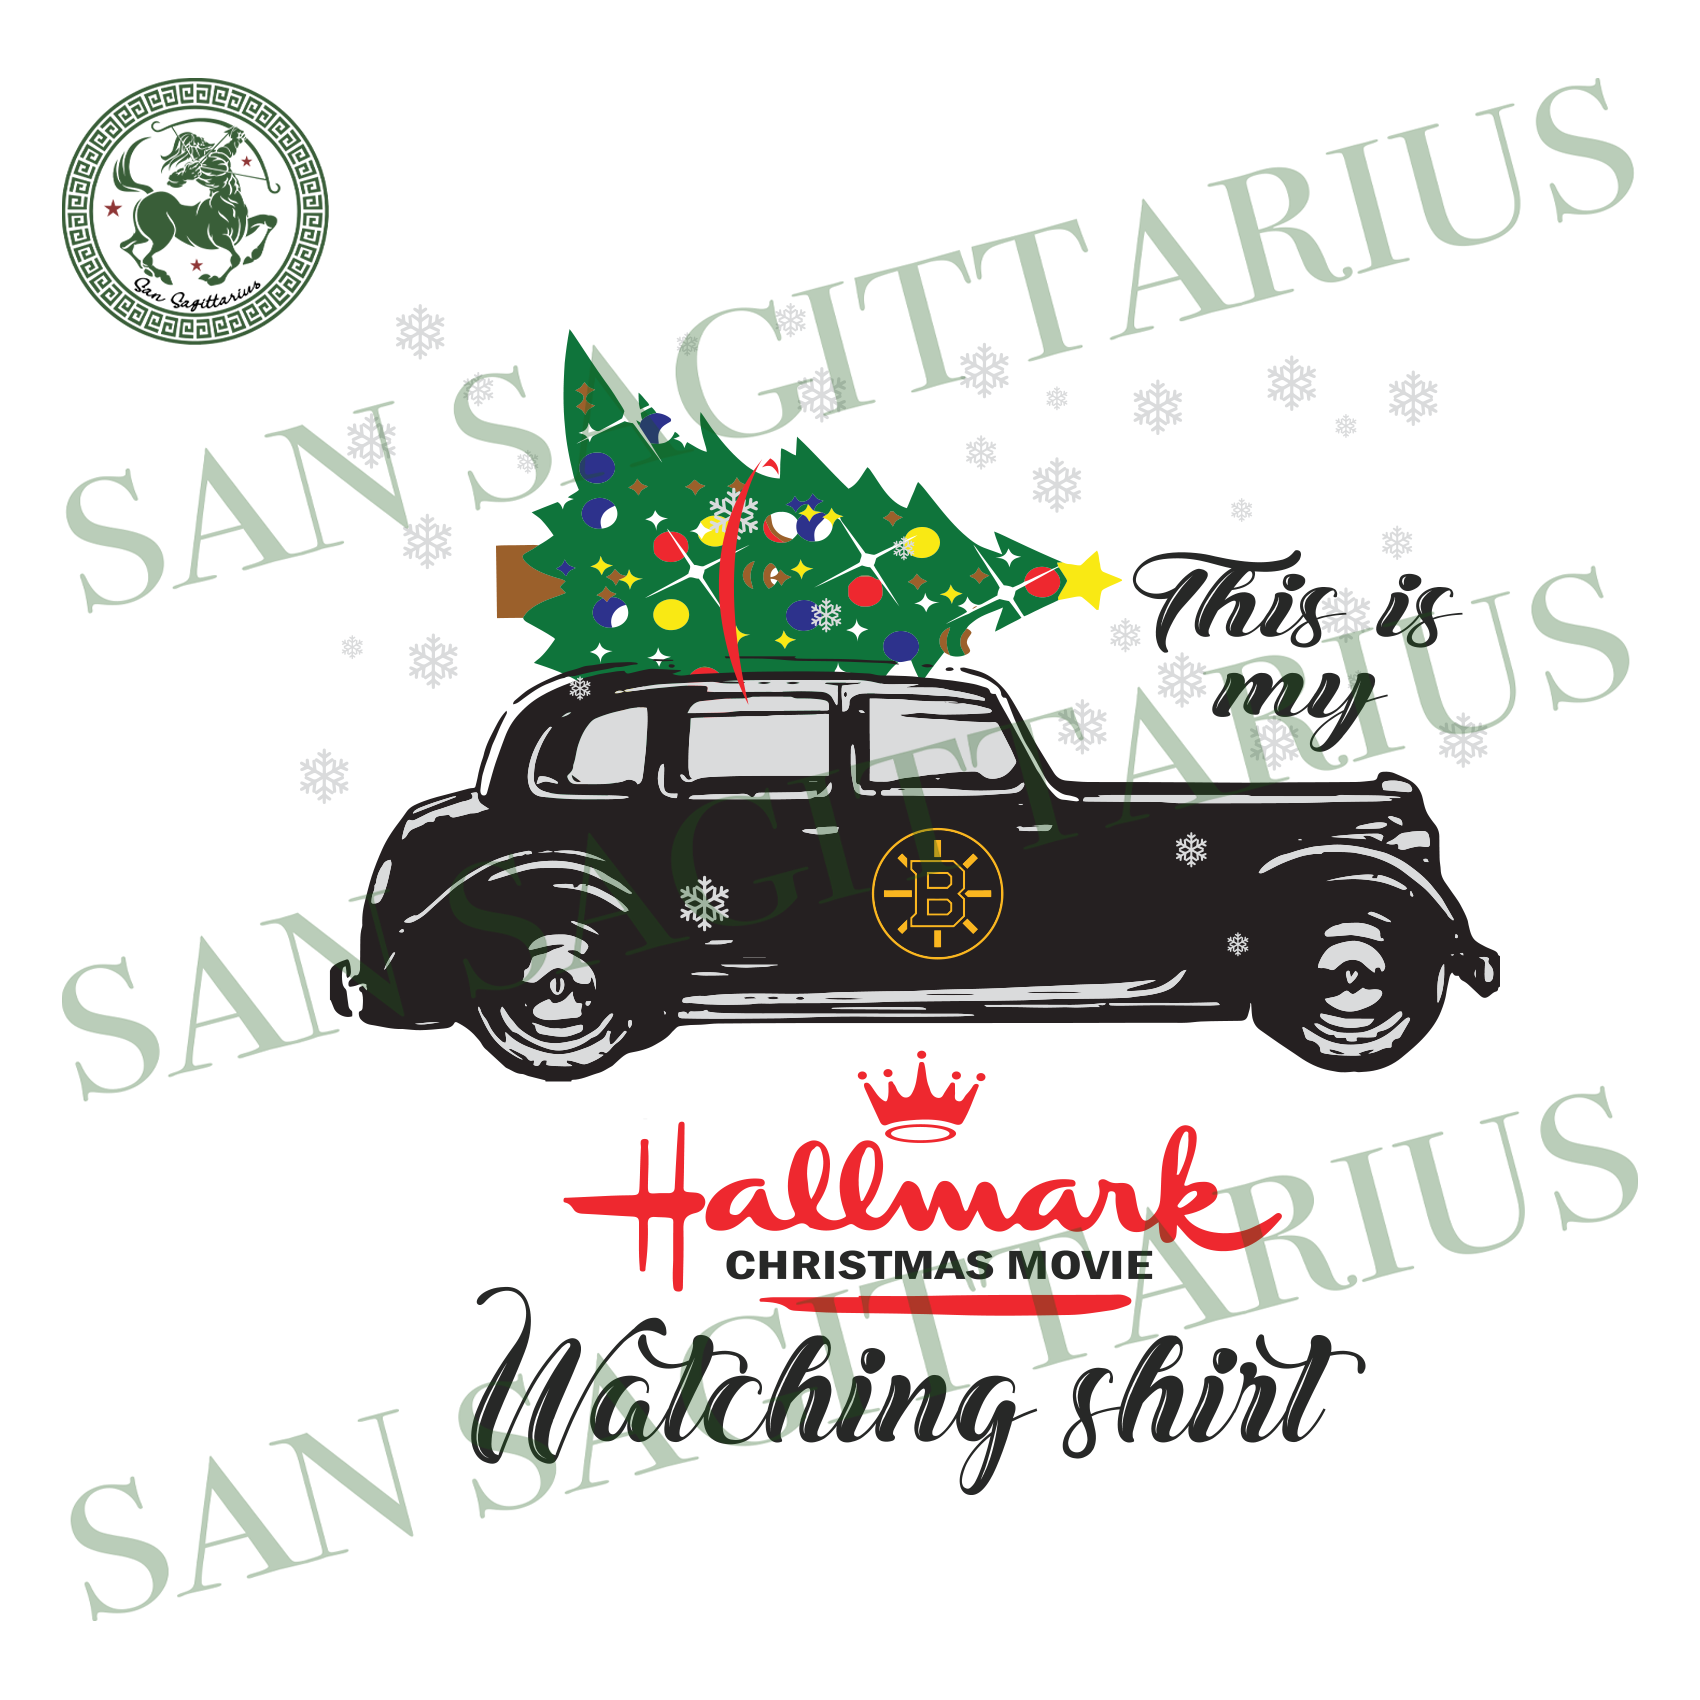 Boston Bruins This Is My Hallmark Christmas Movie Watching Shirt, Sport Svg, Christmas Svg, Boston Bruins Svg, NHL Sport Svg, Boston Bruins NHL Svg, Boston Bruins NHL Gift, Hockey Svg